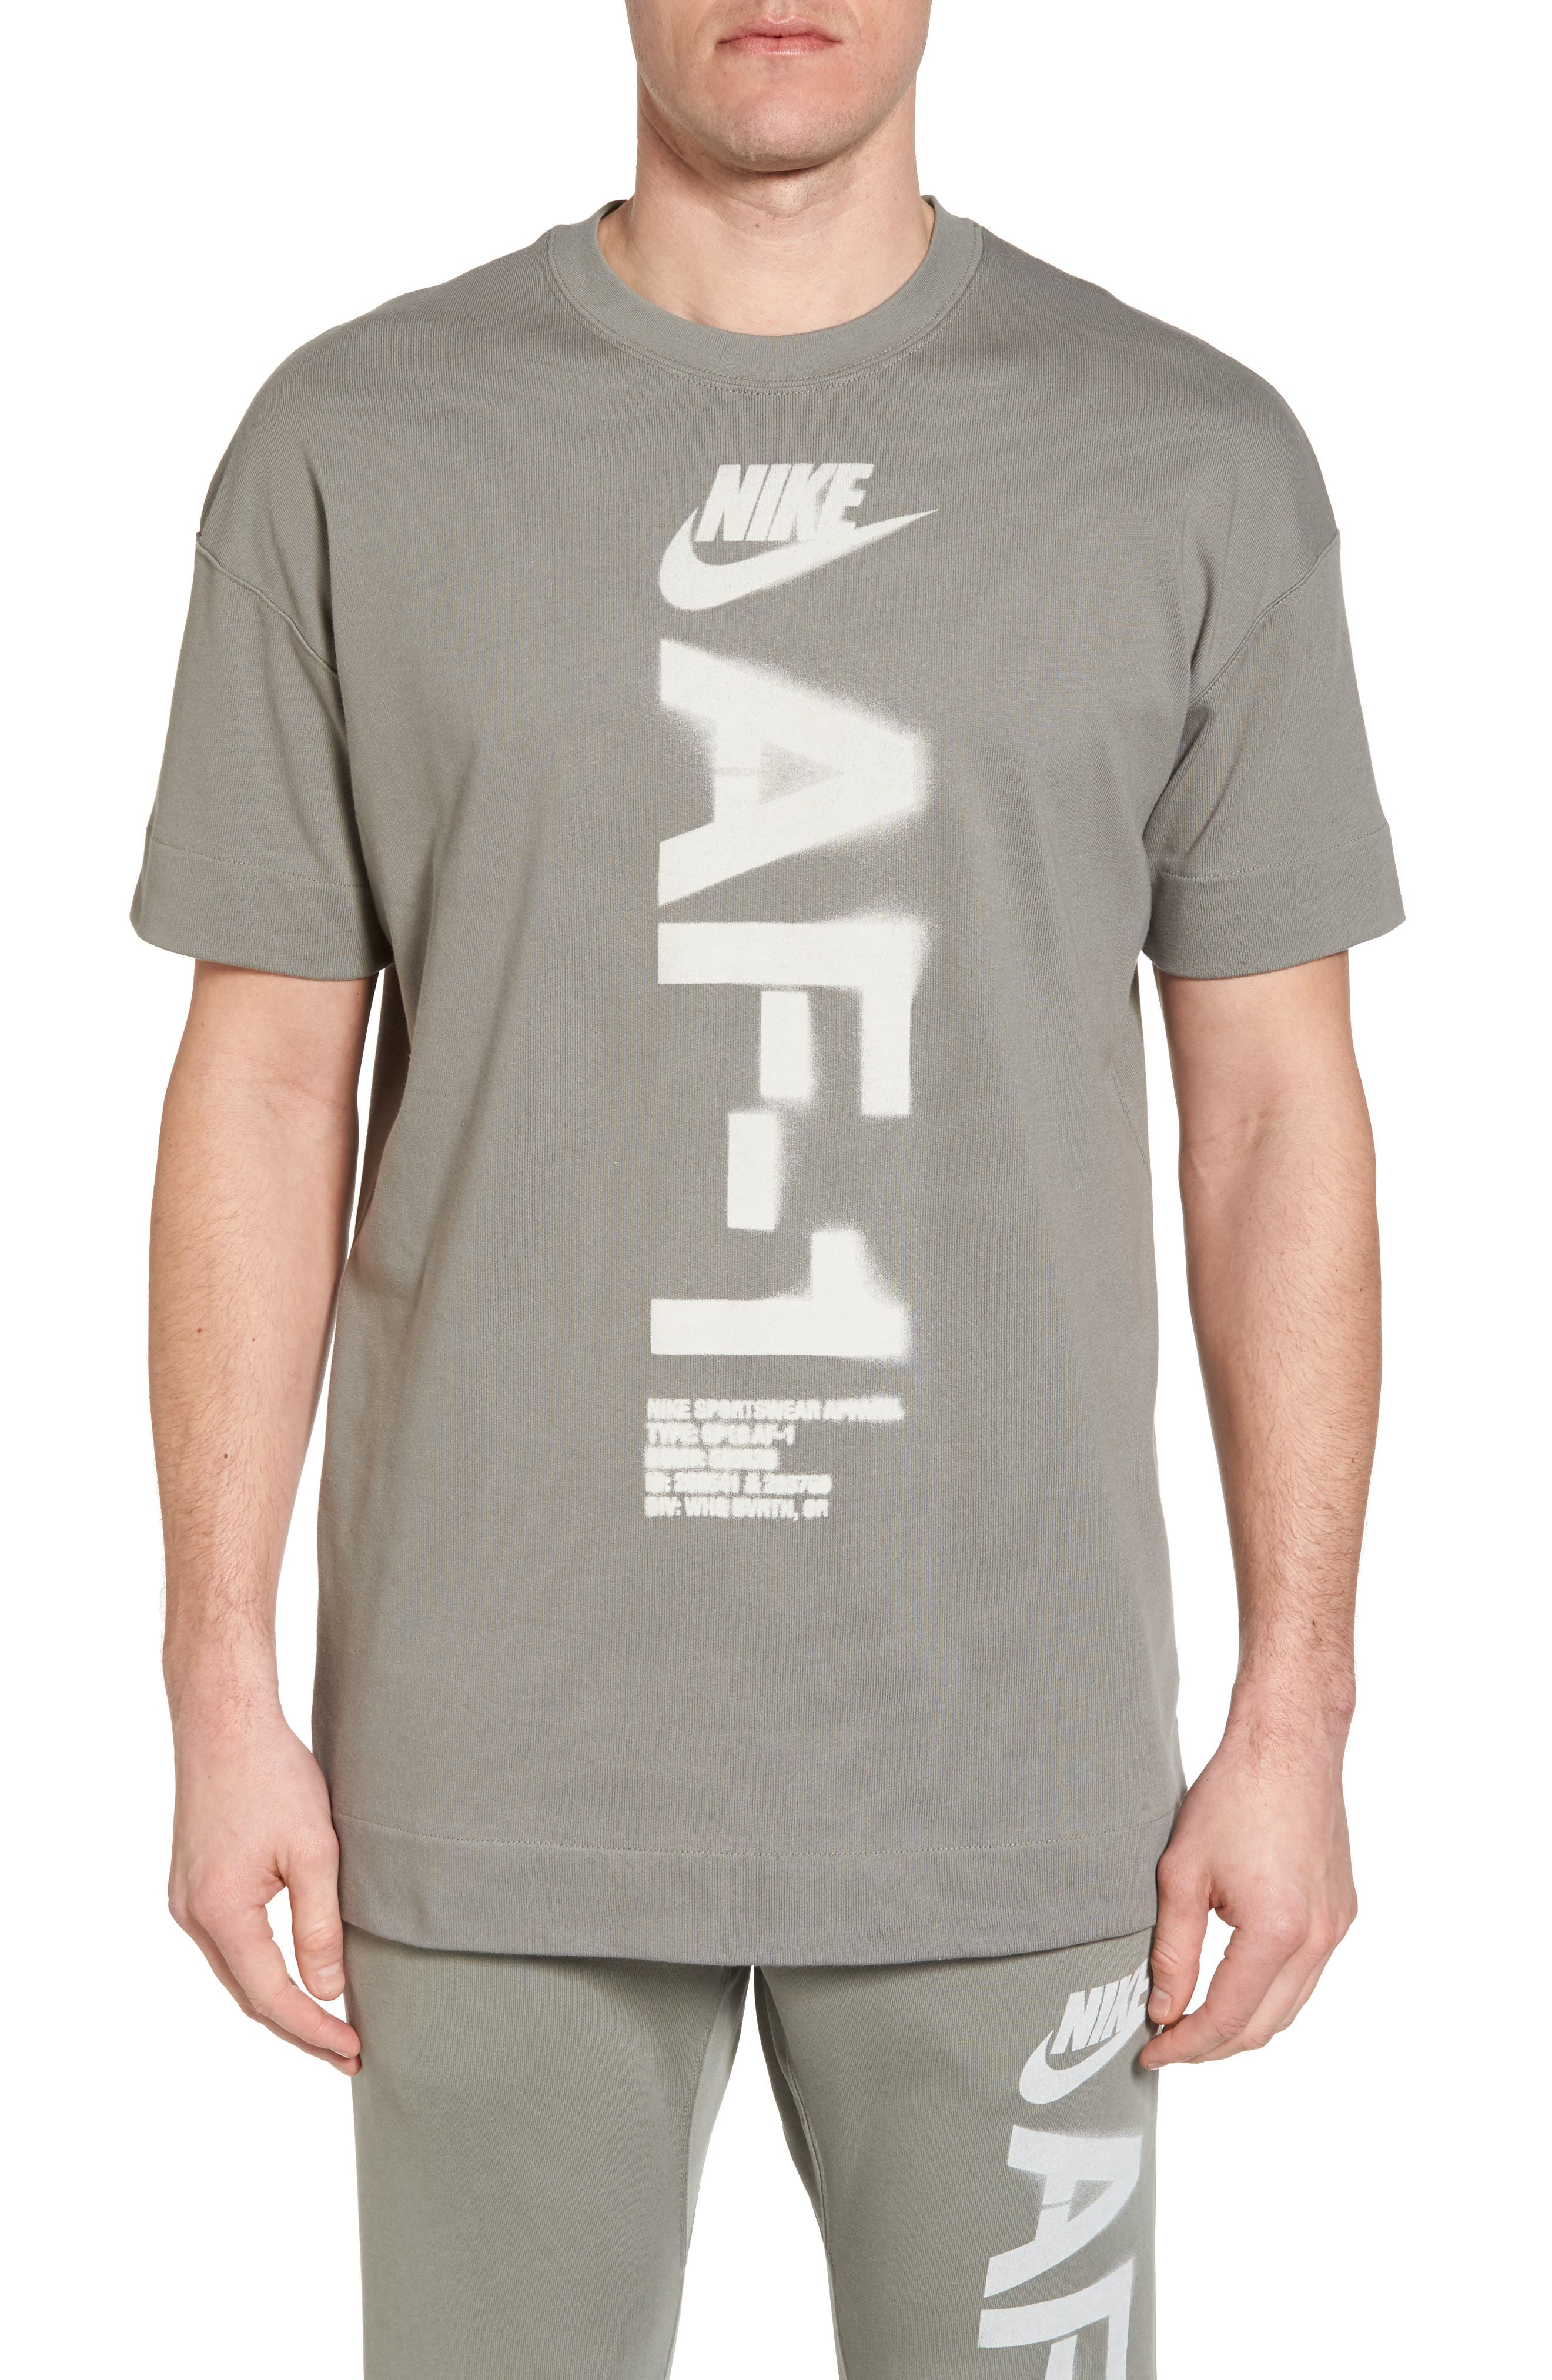 NSW Heavyweight AF-1 T-Shirt,                         Main,                         color, Neutral Olive/ Medium Olive